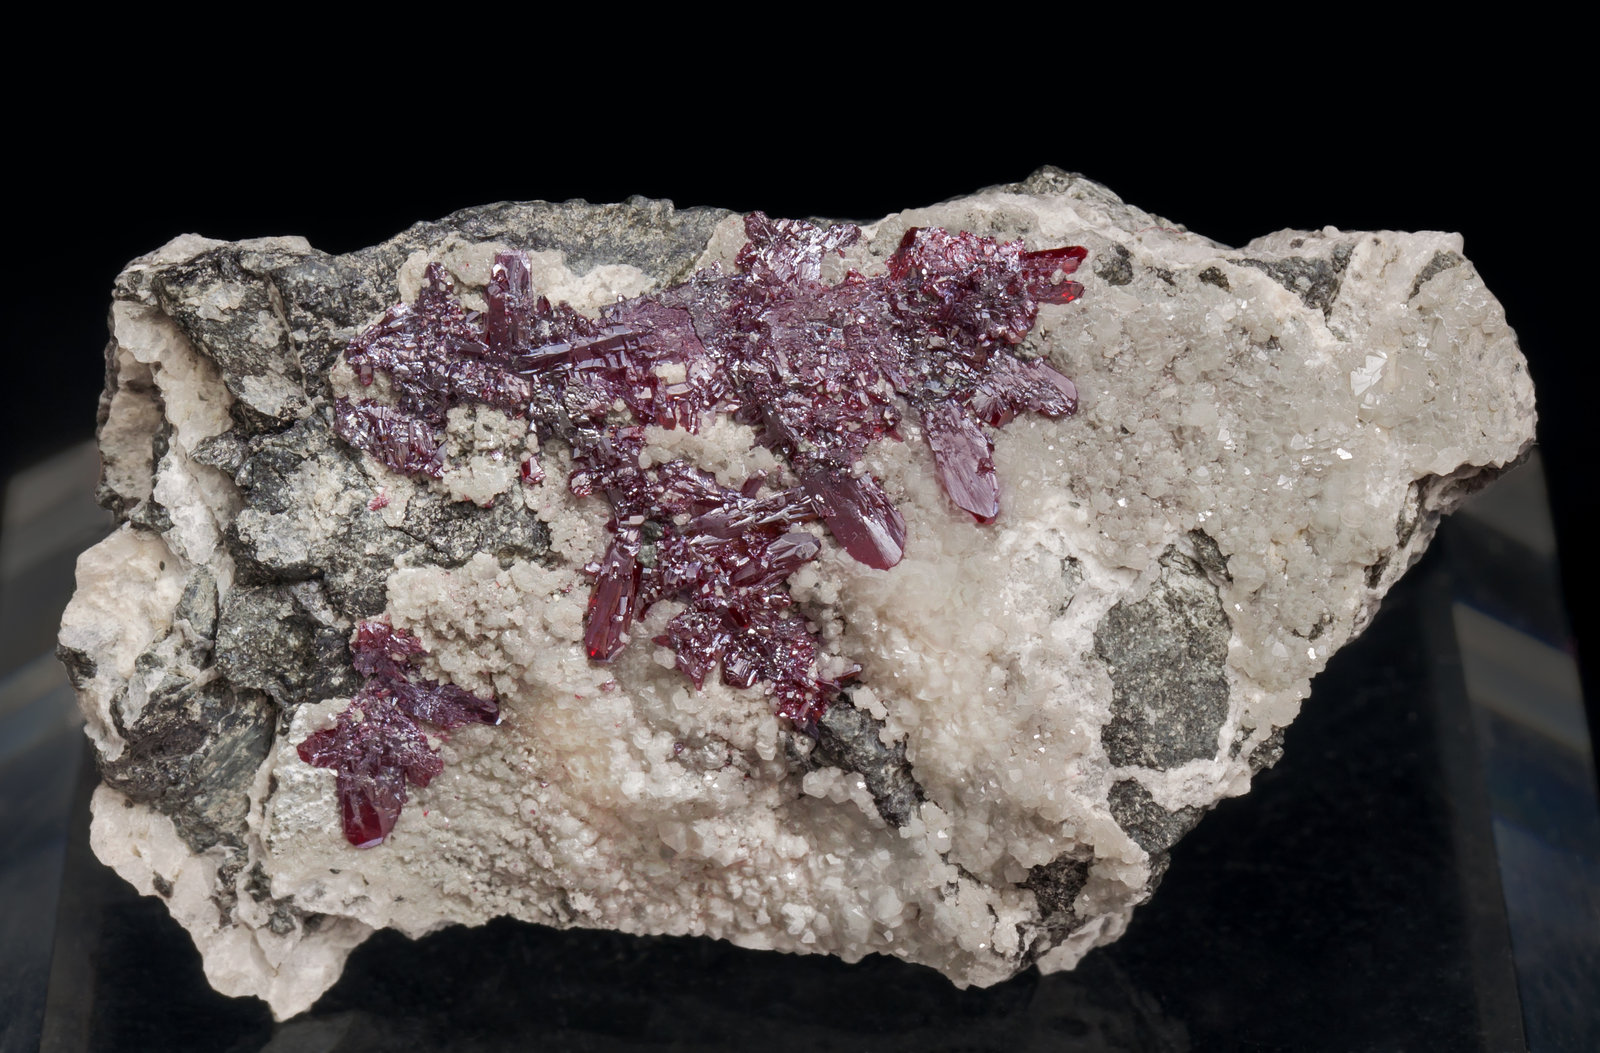 specimens/s_imagesAE6/Proustite-ML36AE6f.jpg